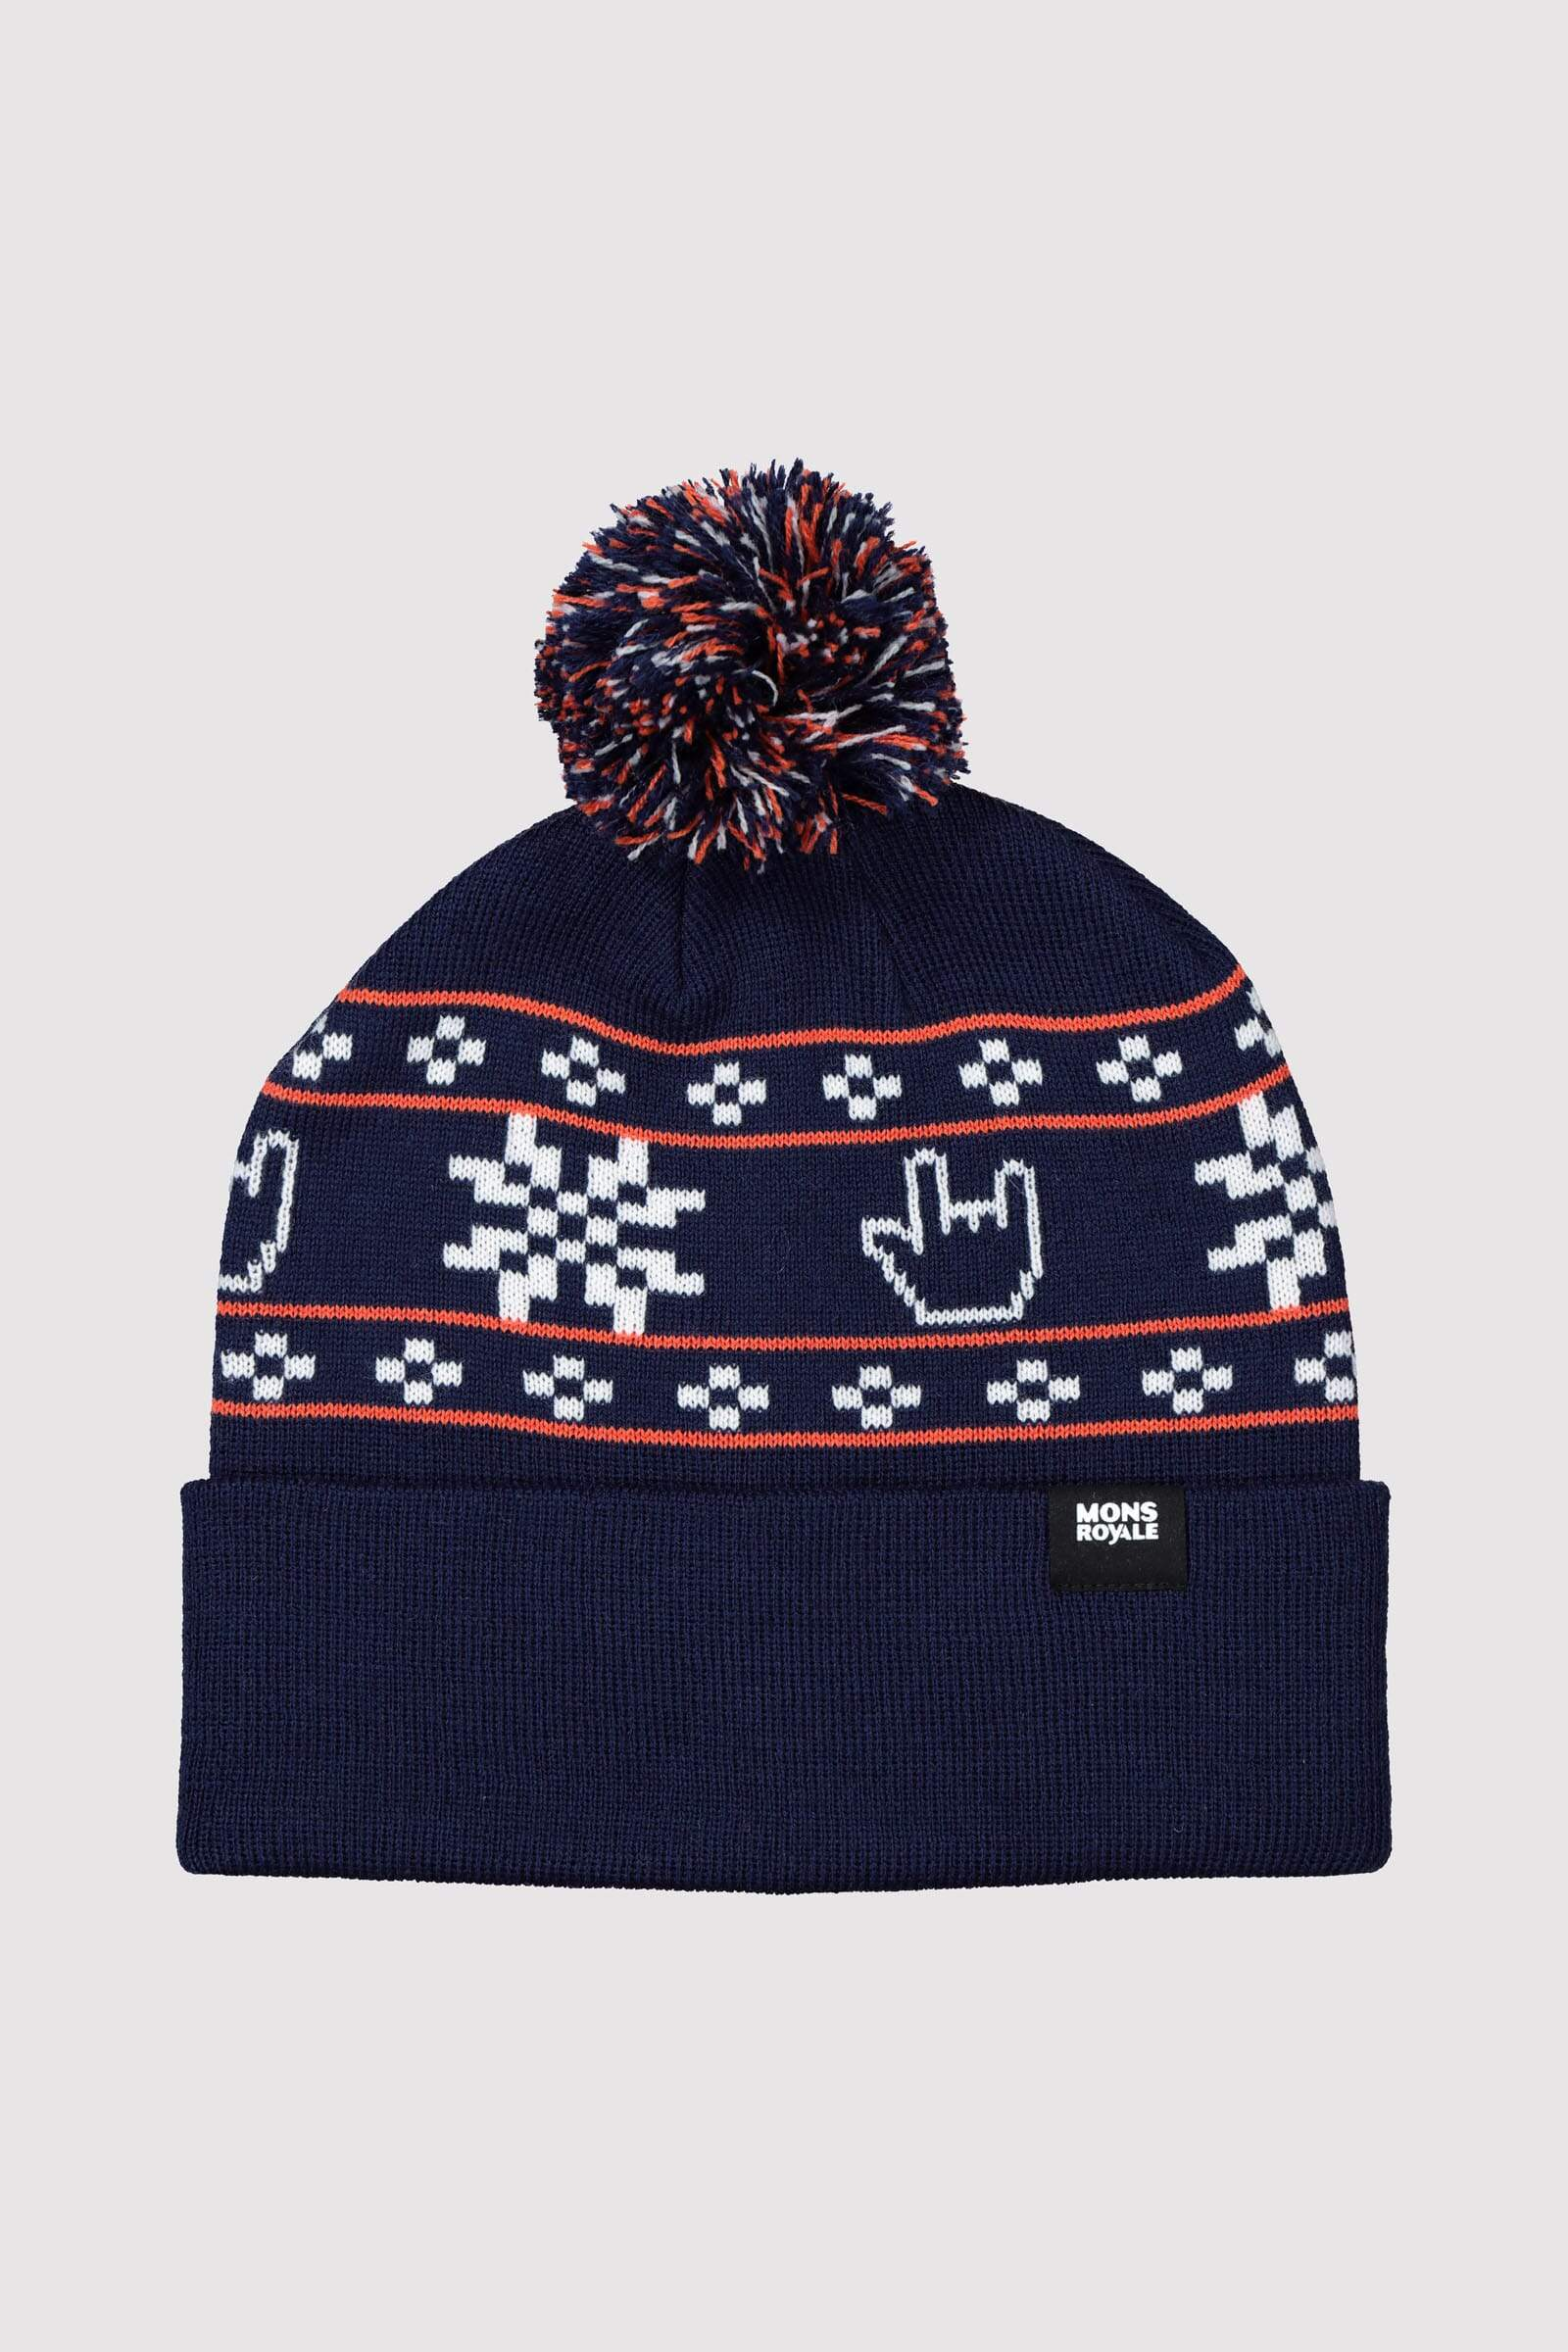 Pom-Pom Beanie - Navy / Orange Smash